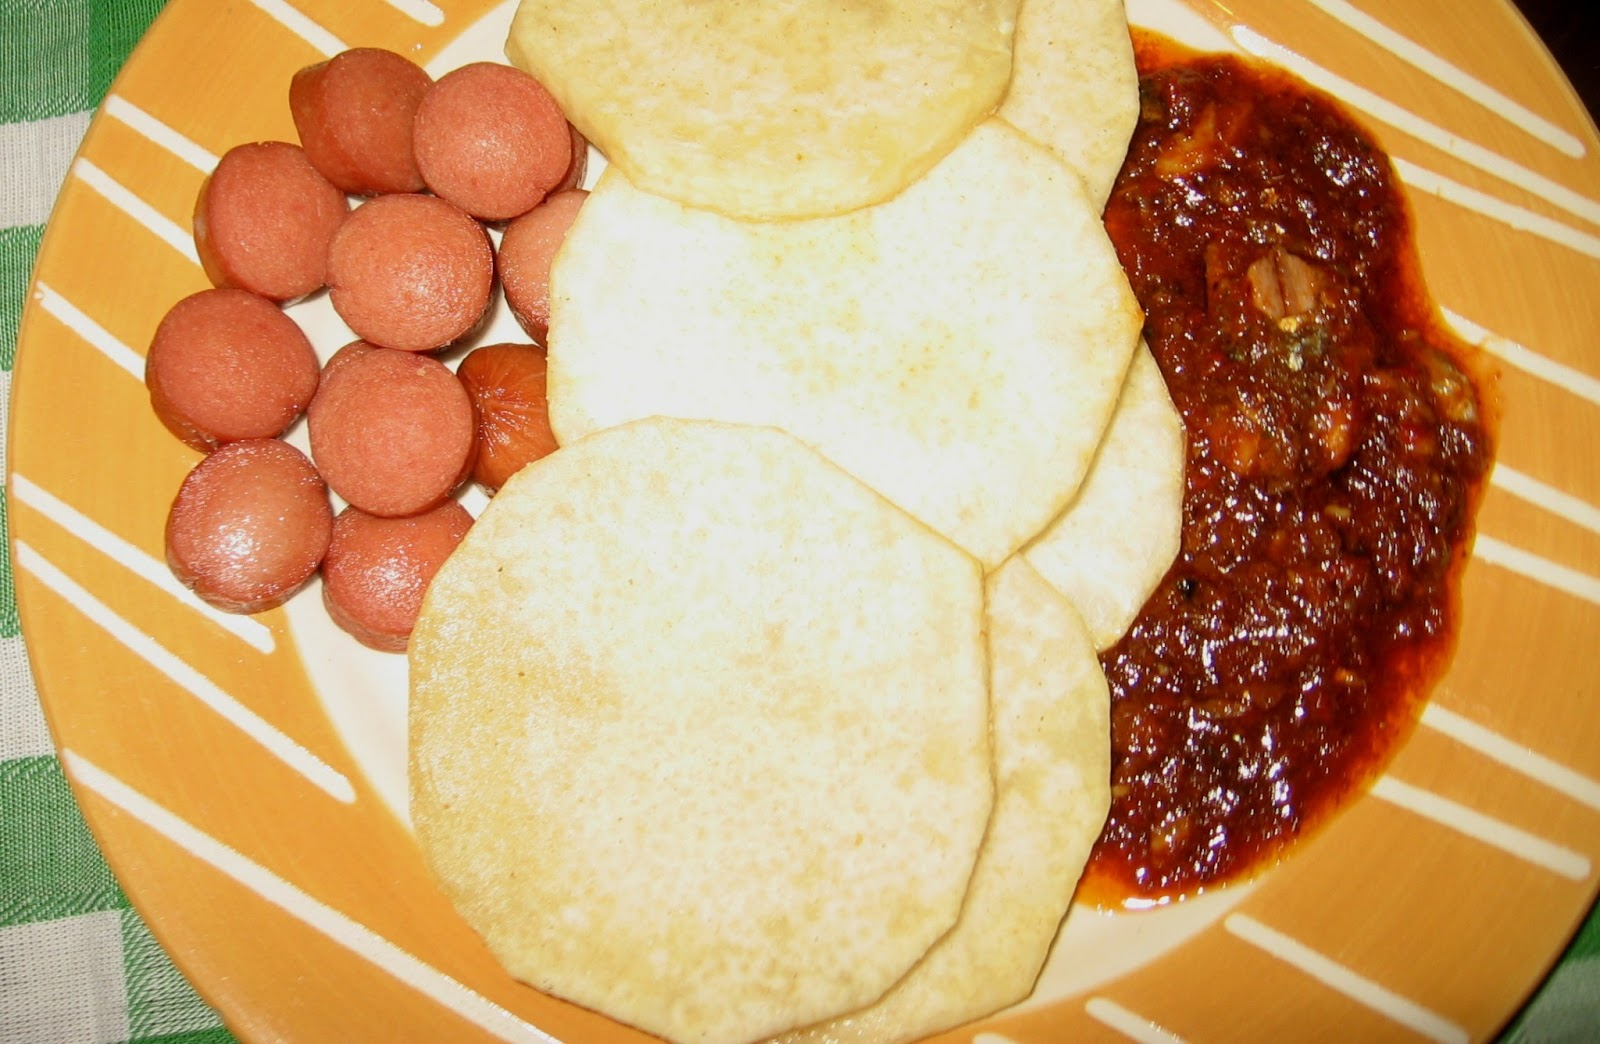 Nigerian Fish Tomato Stew With Fried Yam, Sausages